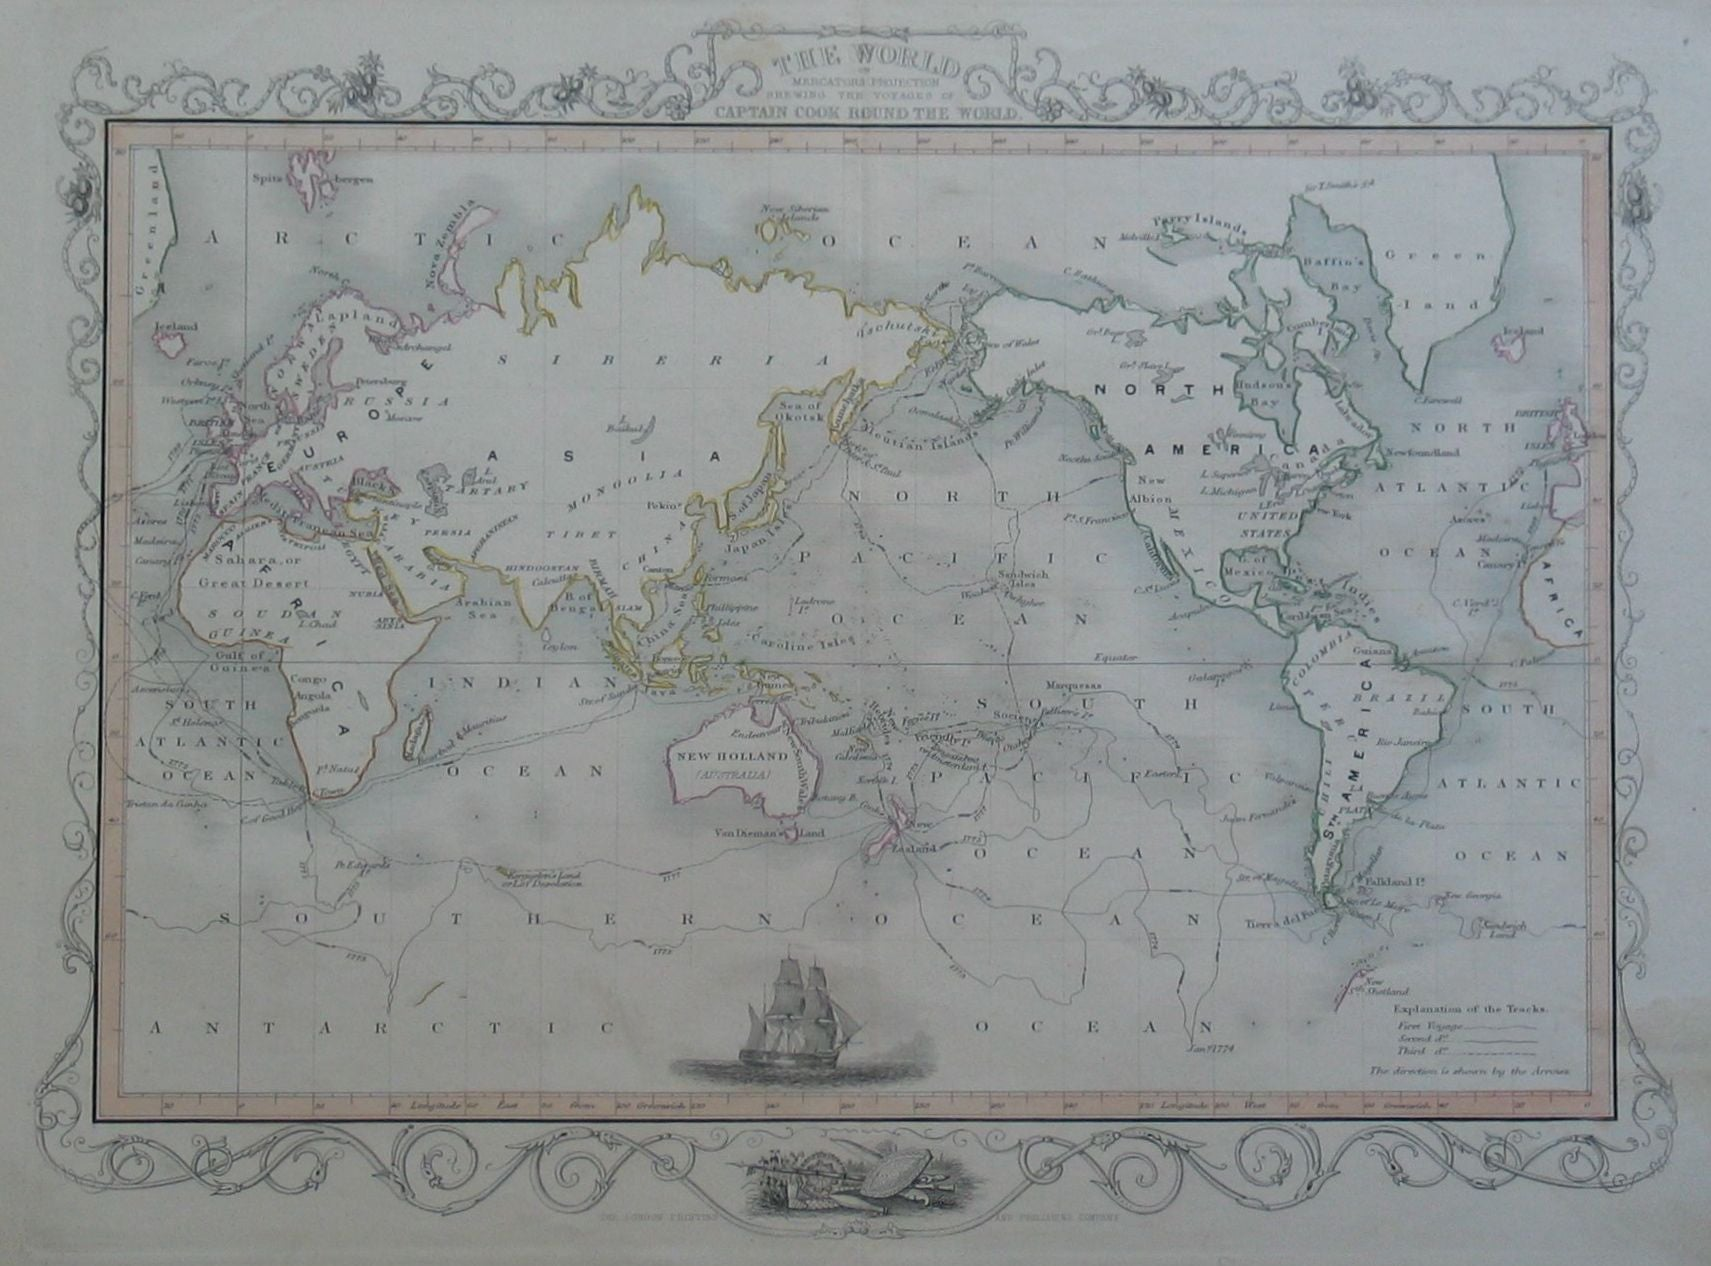 World Map showing Cook's Voyages